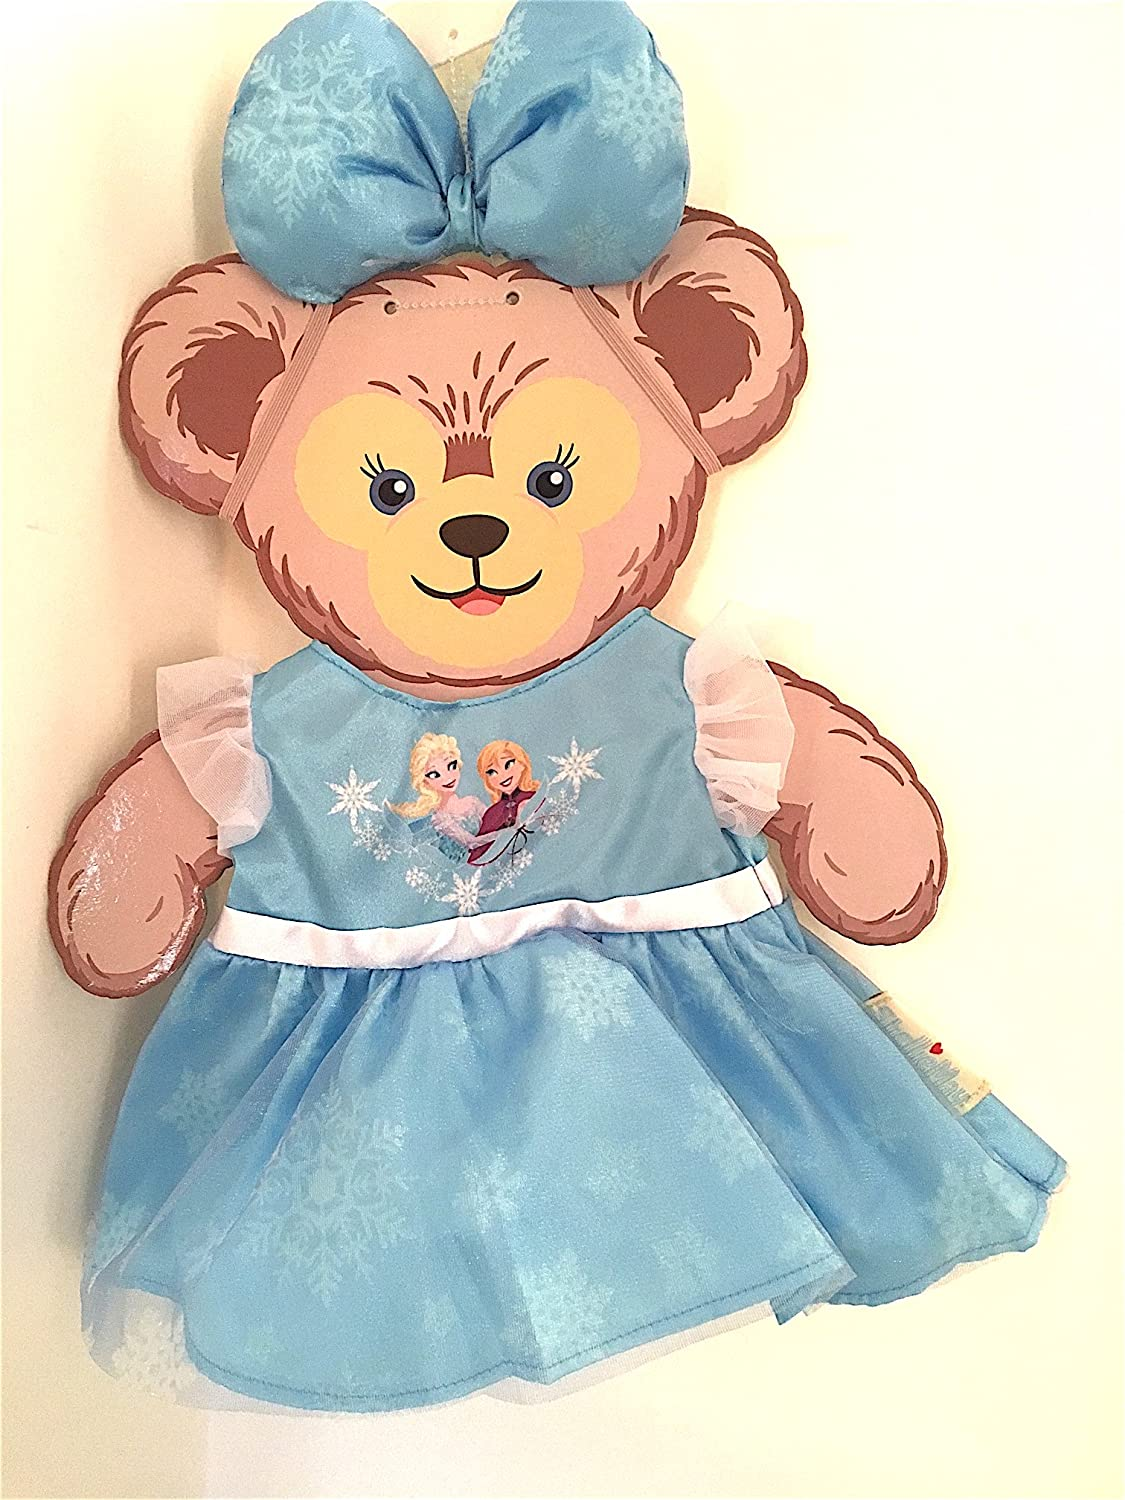 Amazon.com: ShellieMay the Disney Bear Frozen Costume - 17: Toys & Games